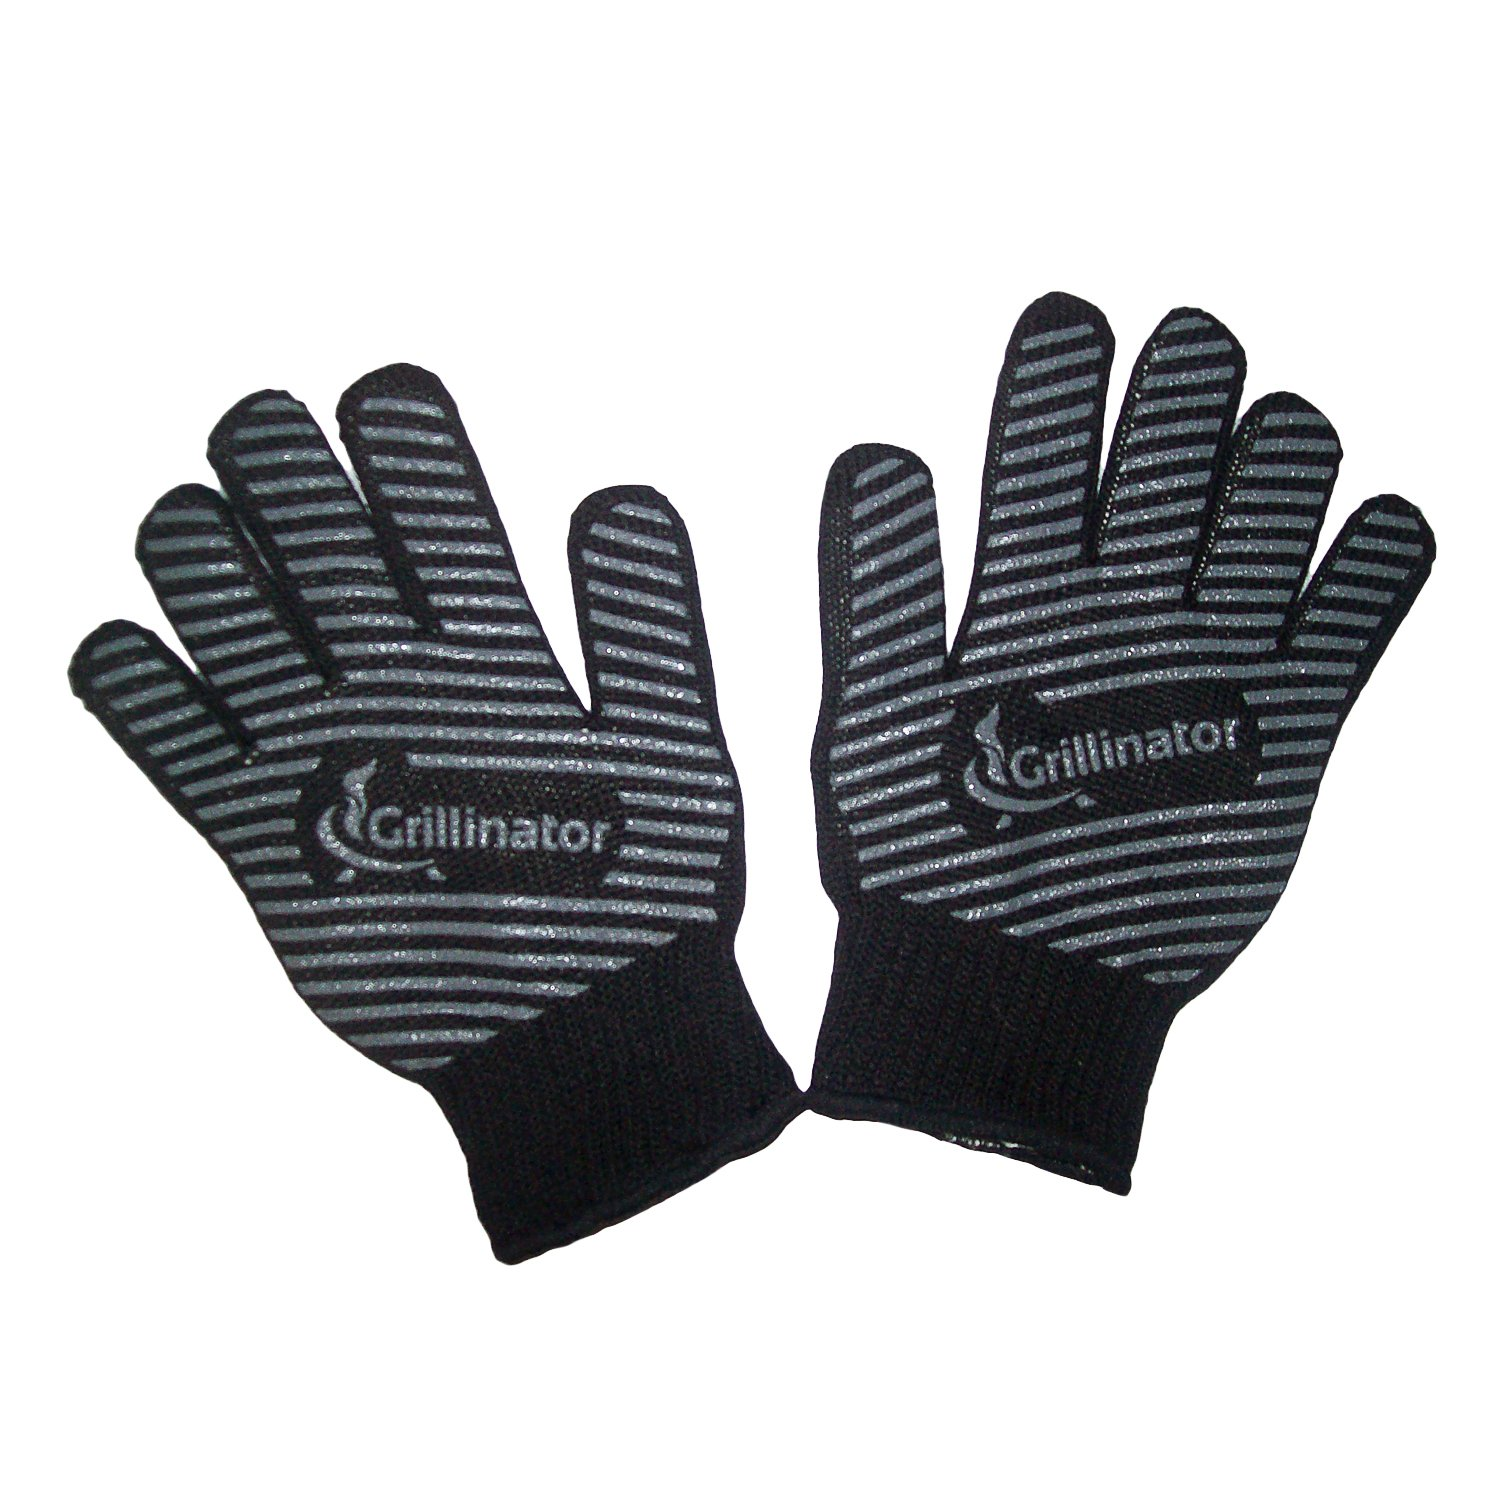 Heat Resistant Authentic Grillinator BBQ Oven Gloves Come With An Unconditional Guarantee